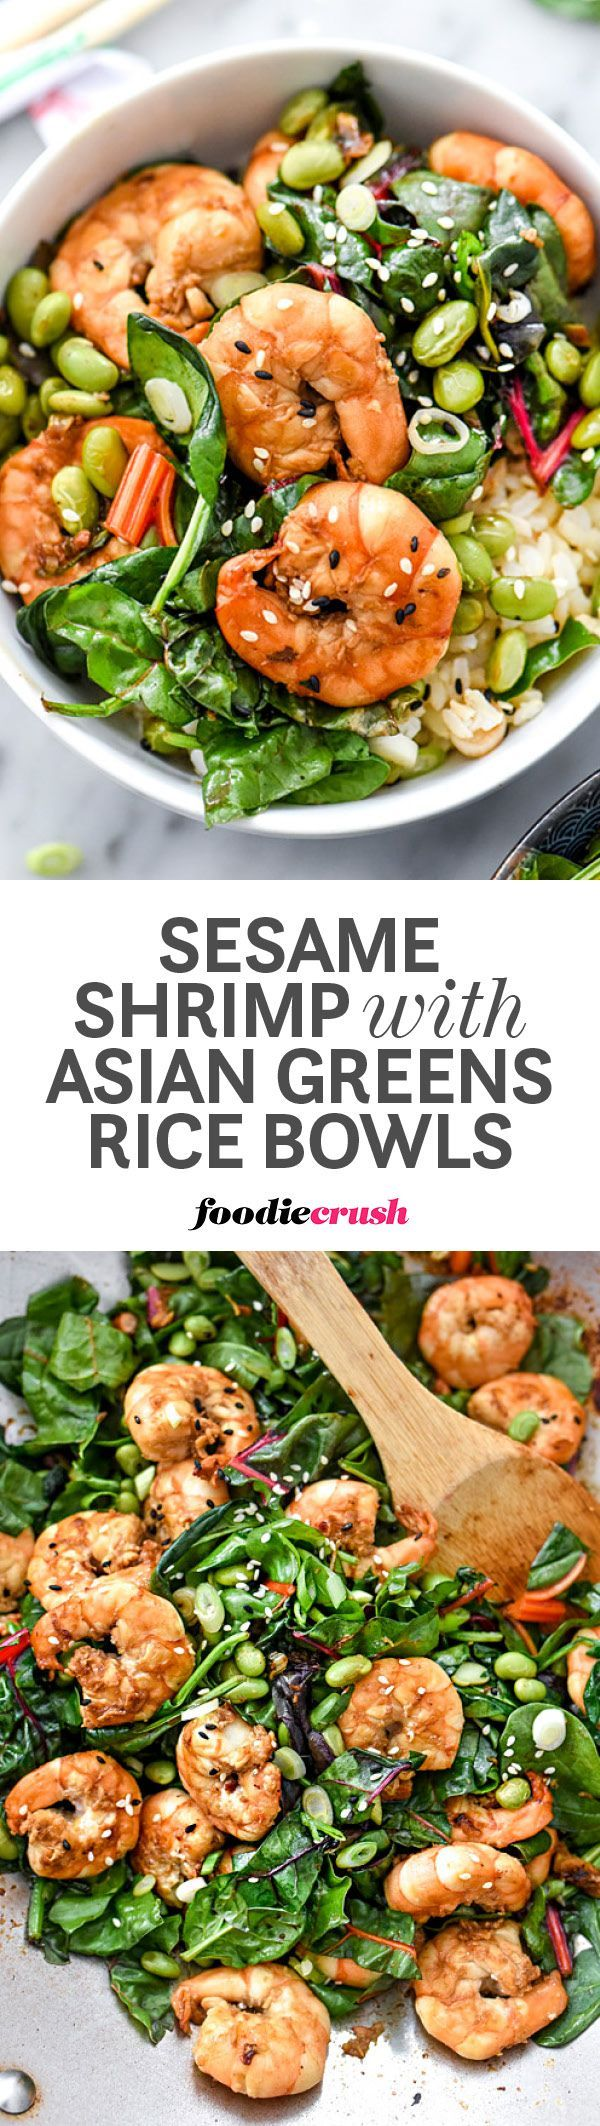 This quick meal in a bowl of shrimp seasoned in sesame flavors is stir fried with rainbow swiss chard, spinach, edamame, green onions to top brown rice | http://foodiecrush.com